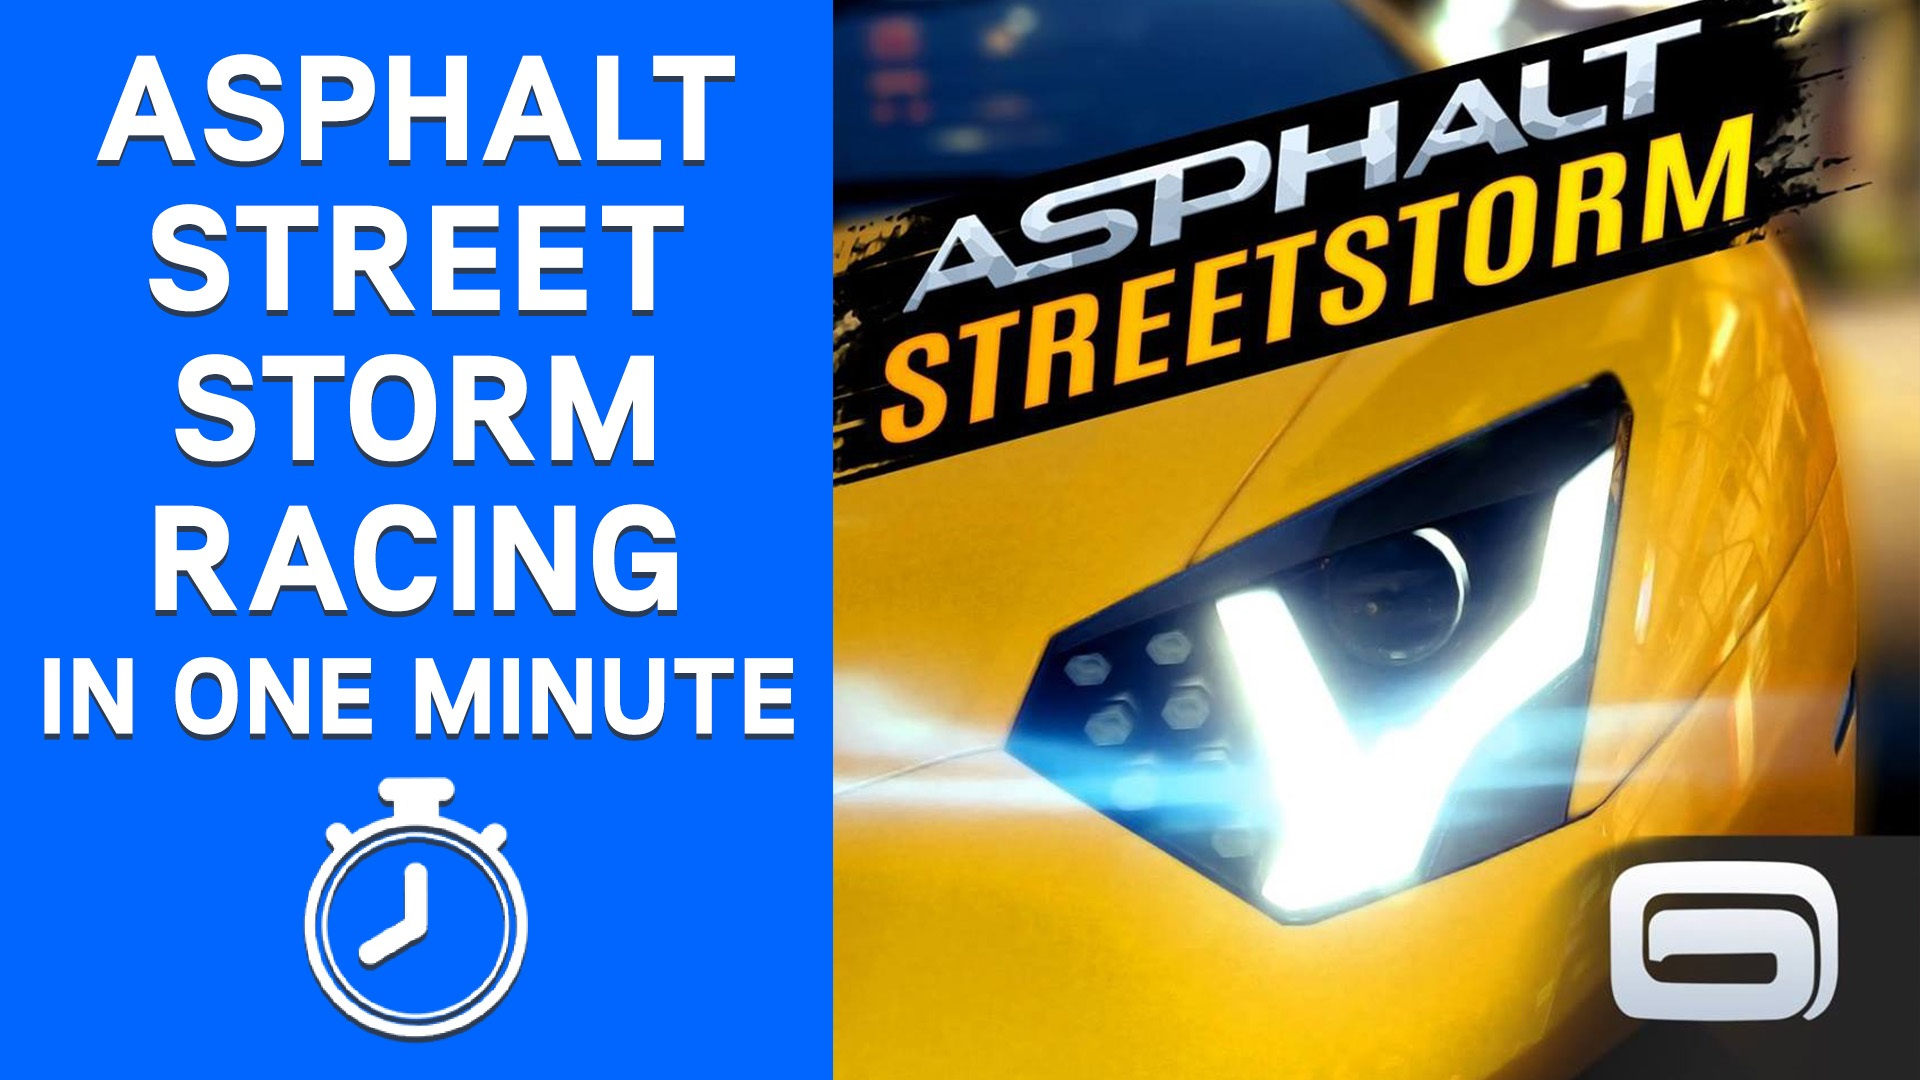 Asphalt Street Storm Racing in One Minute